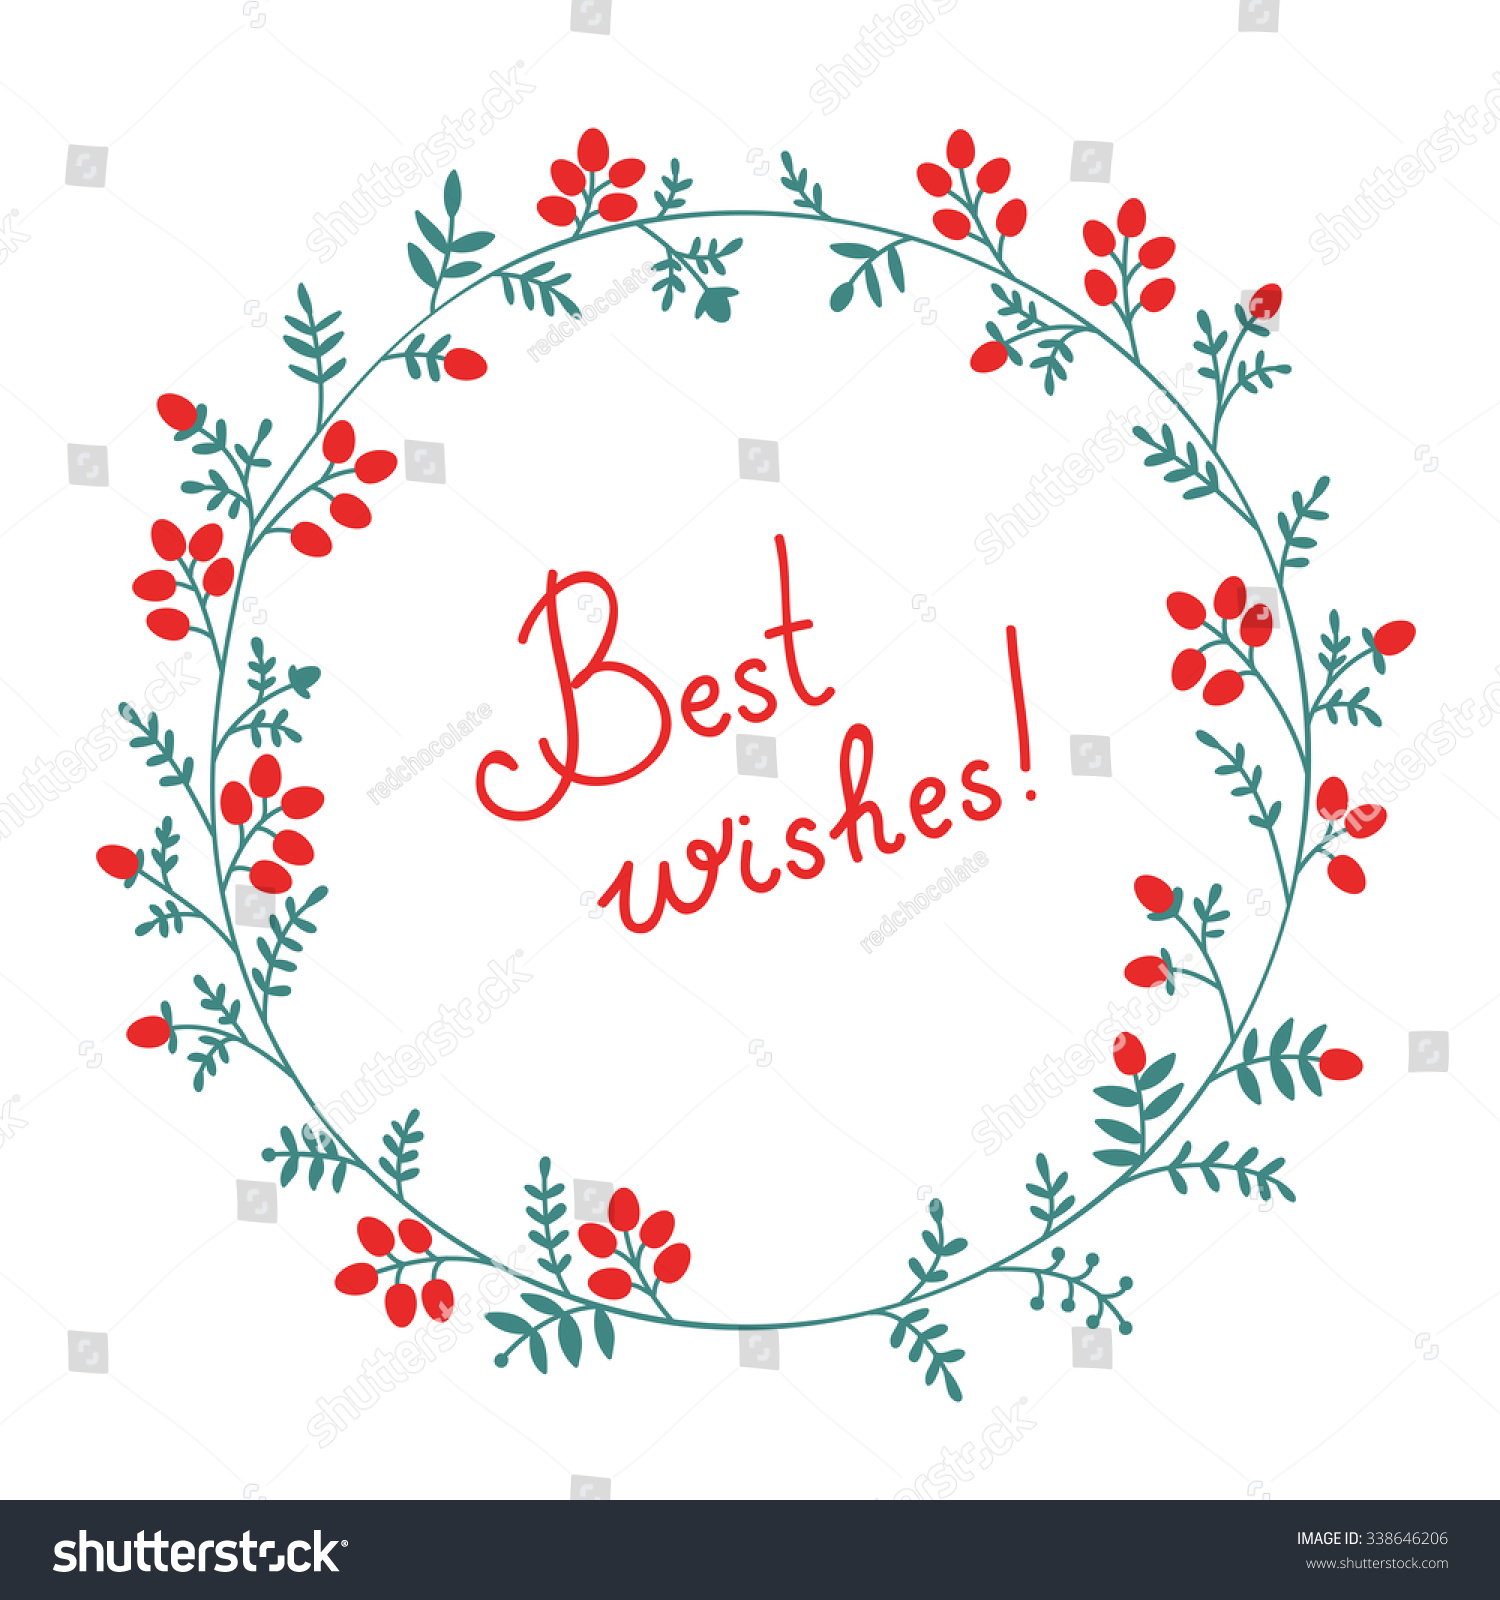 Best Wishes Floral Wreath Design Element Stock Vector Royalty Free